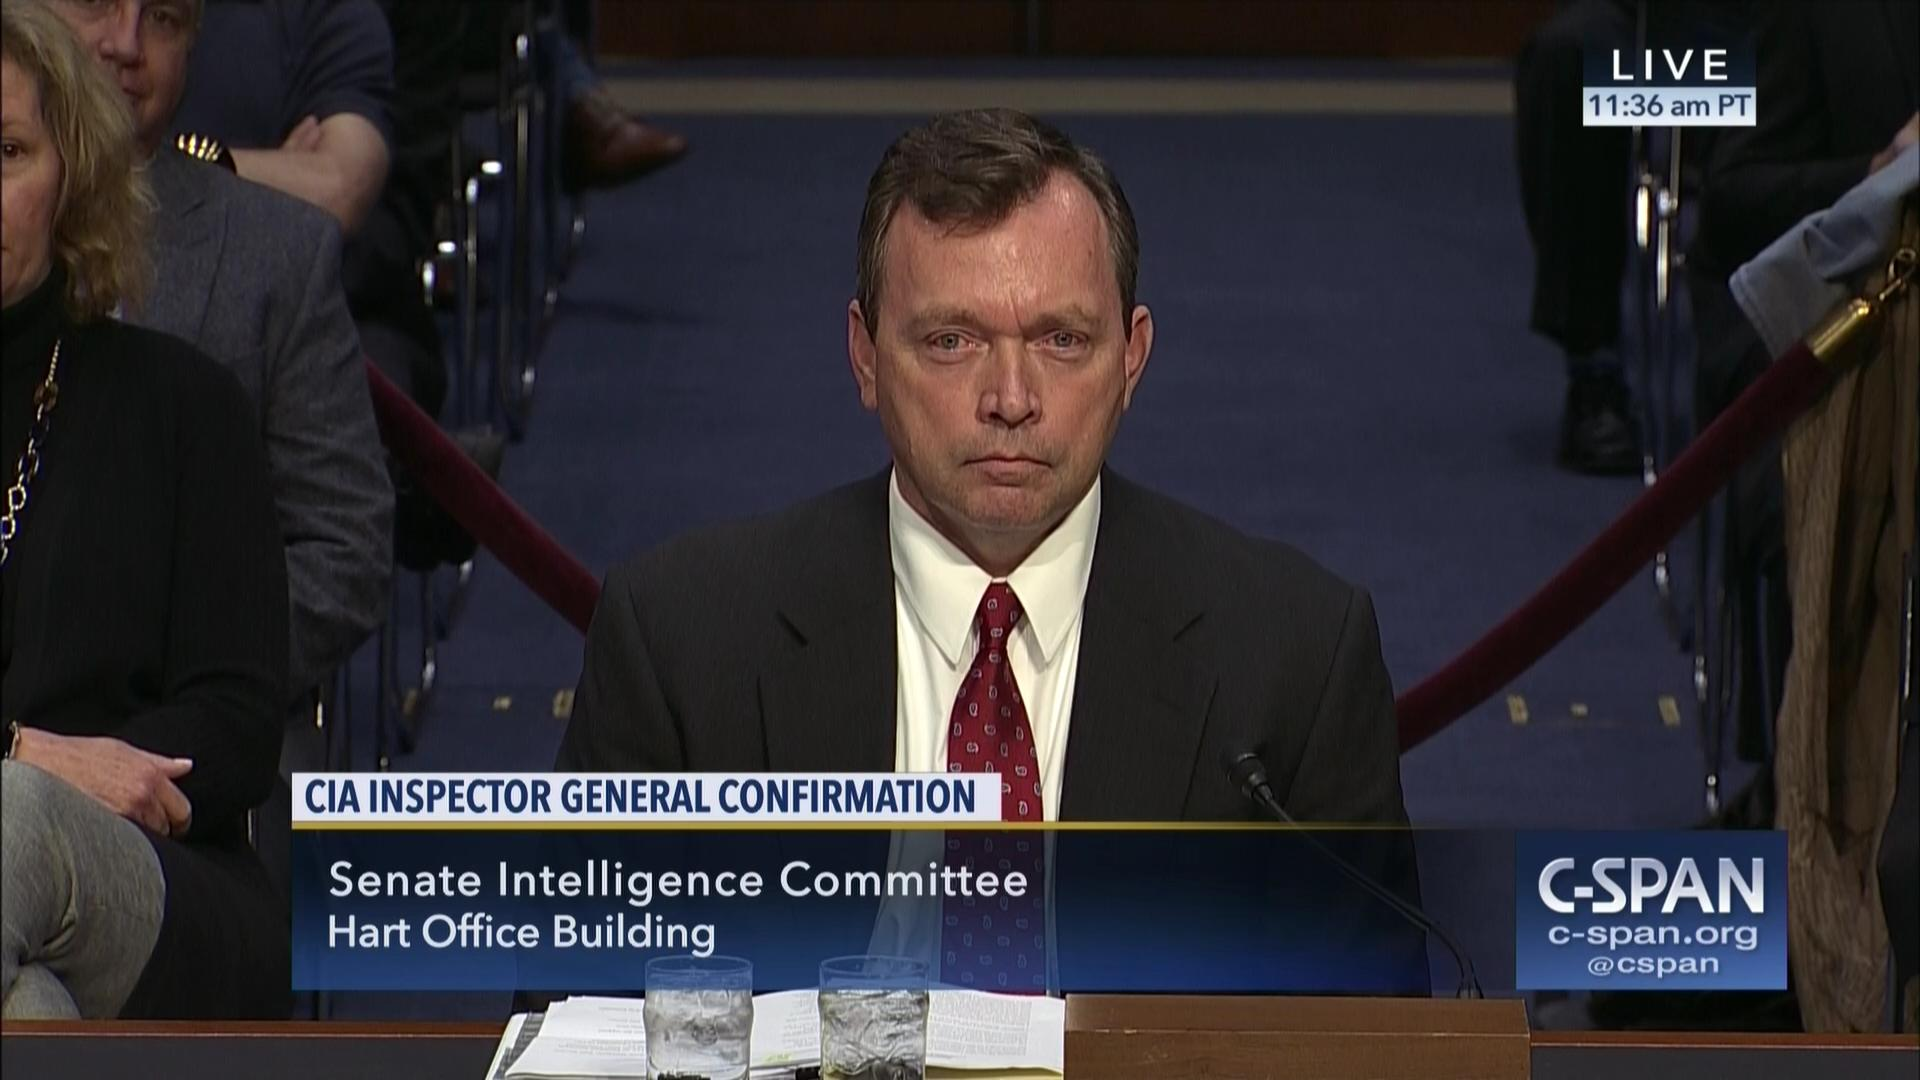 CIA Inspector General Confirmation Hearing